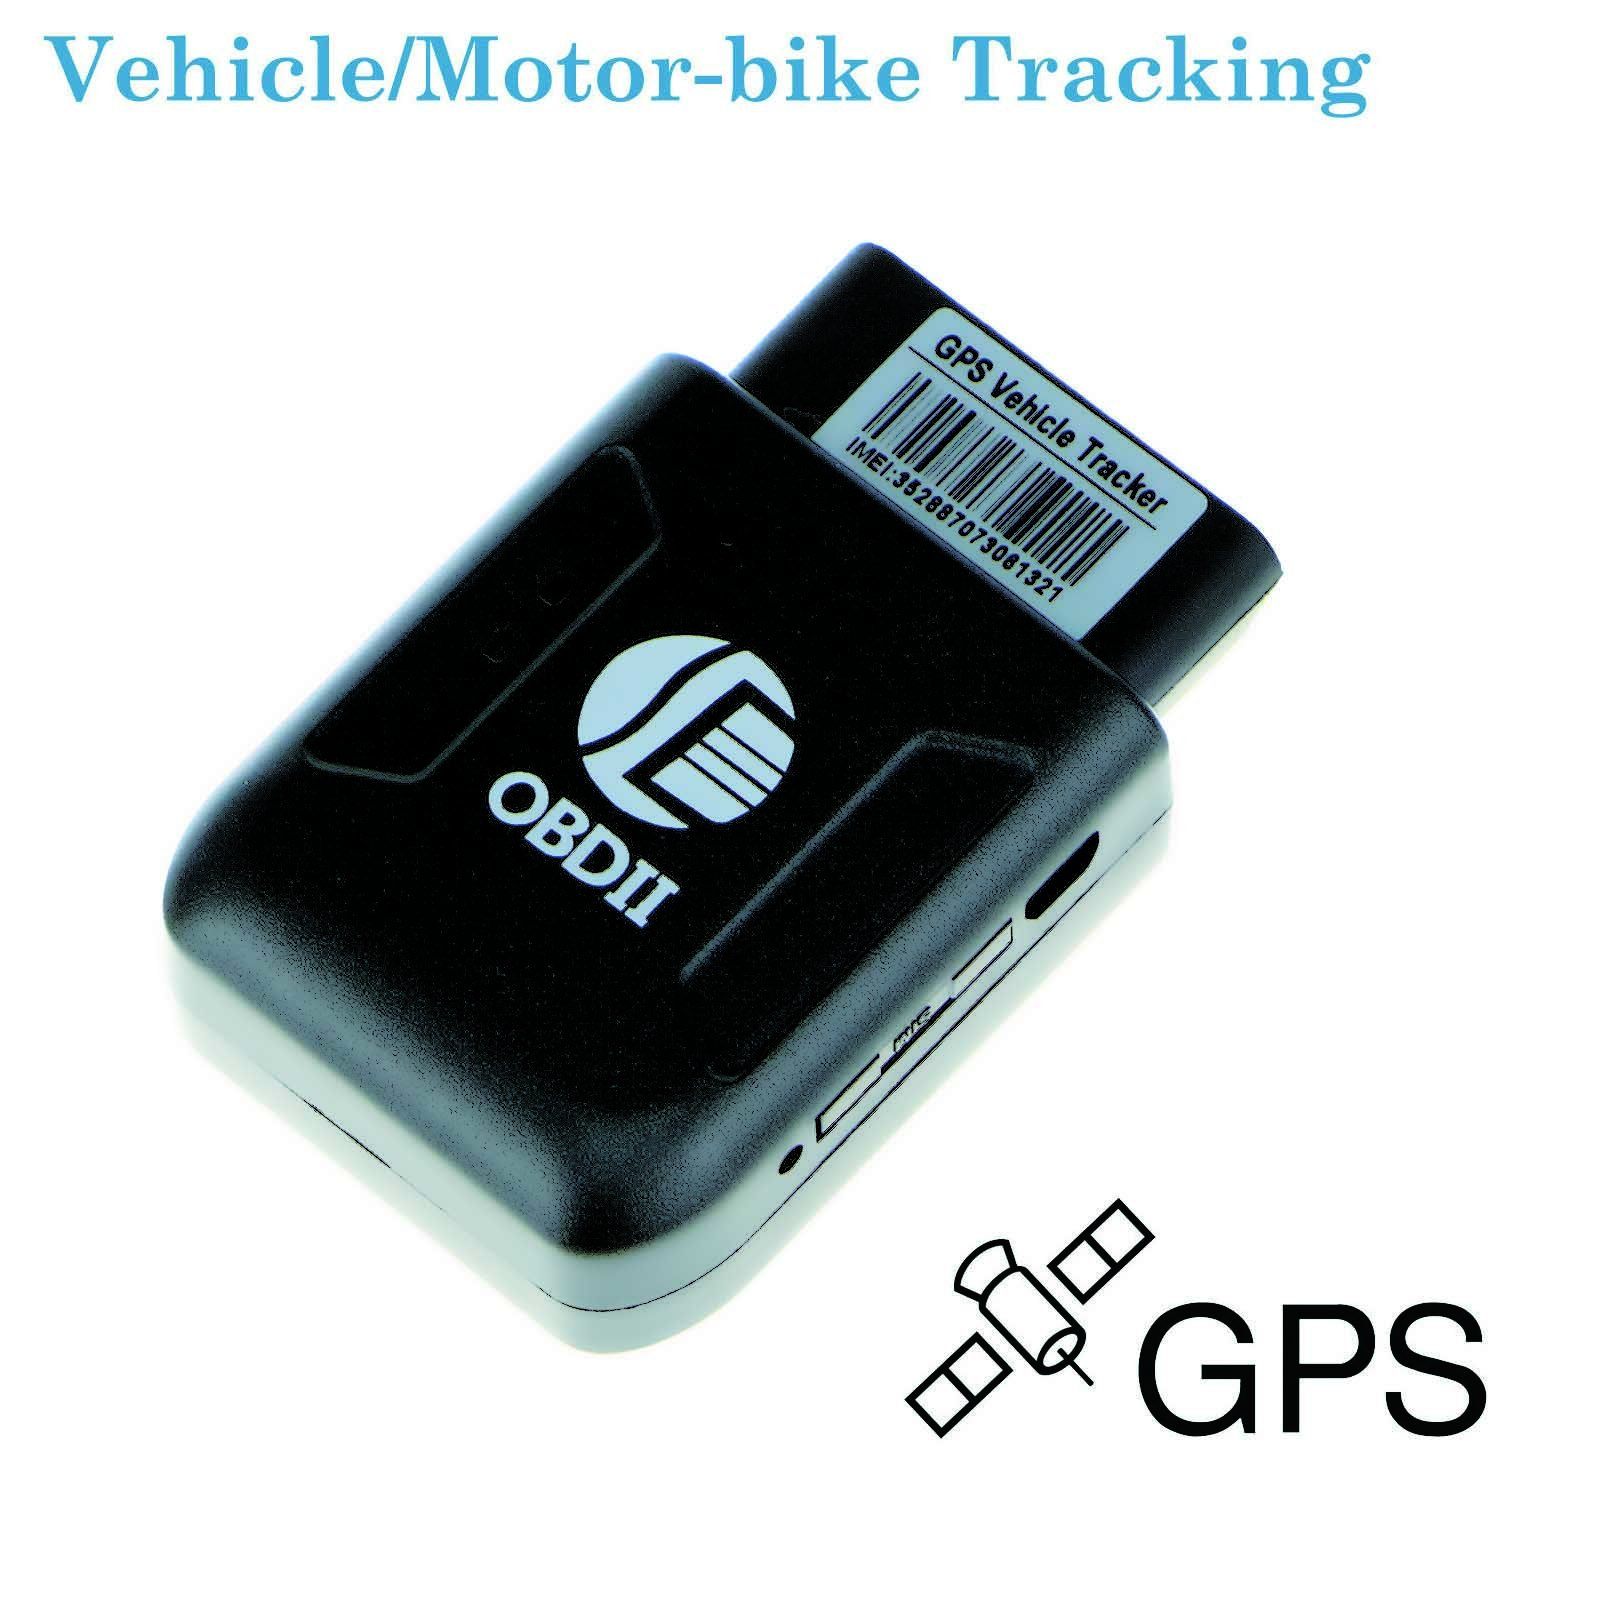 LinkStyle OBD II Car Vehicle Truck GPS Realtime Tracker Mini OBD2 Tracking Device GSM GPRS